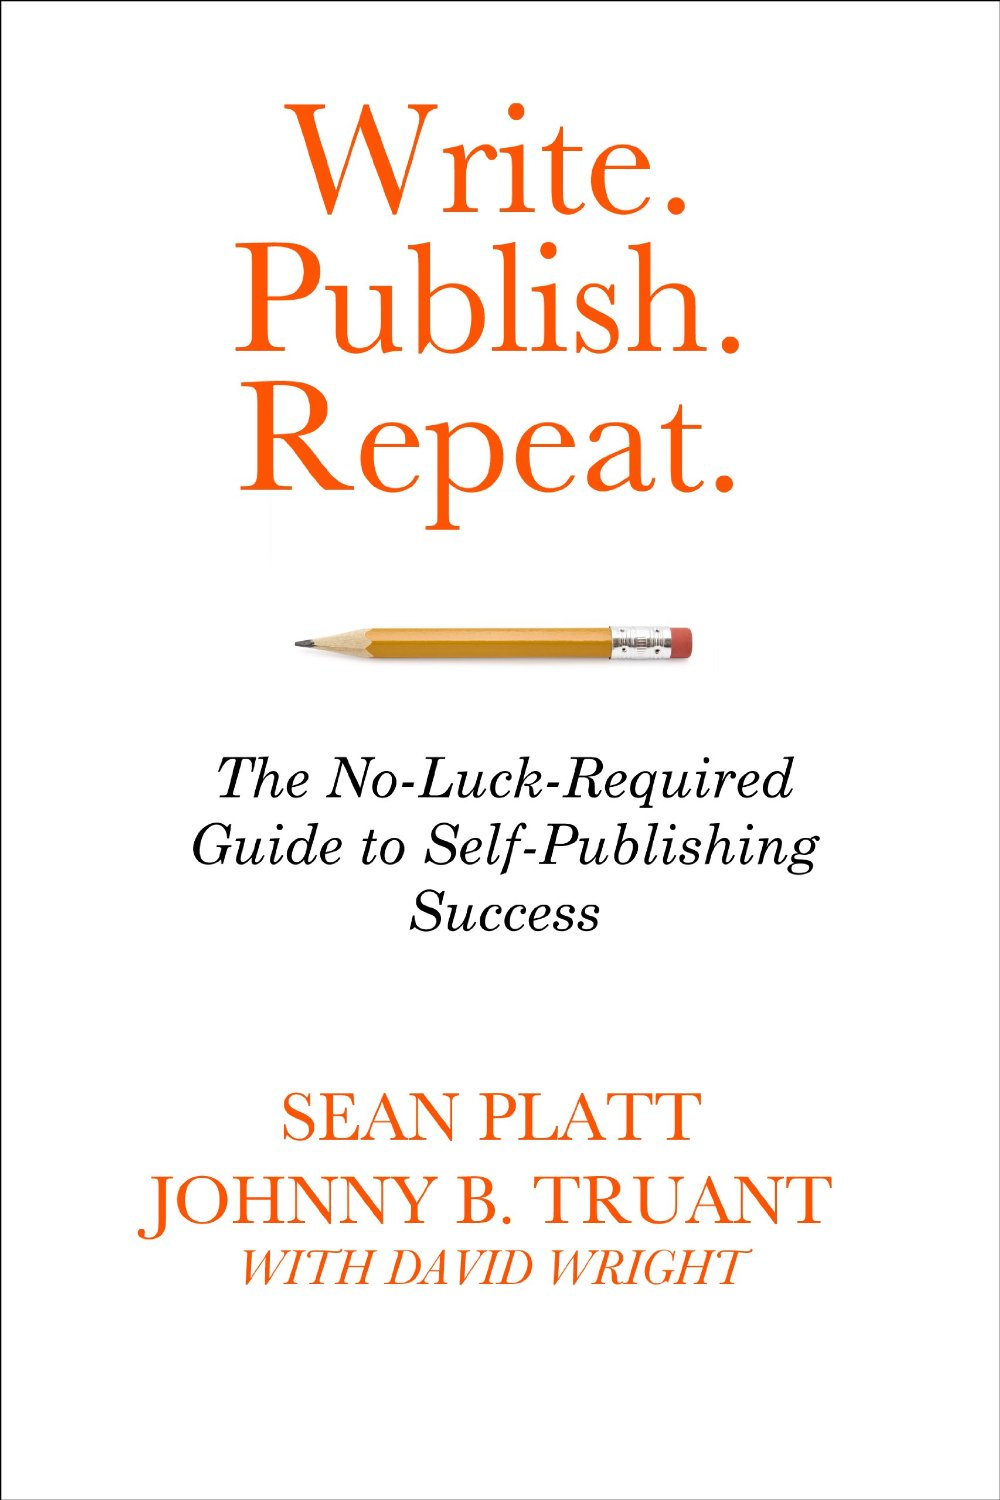 Rebel Ragdoll Review (Book): Write, Publish, Repeat by Sean Platt and Johnny B. Truant